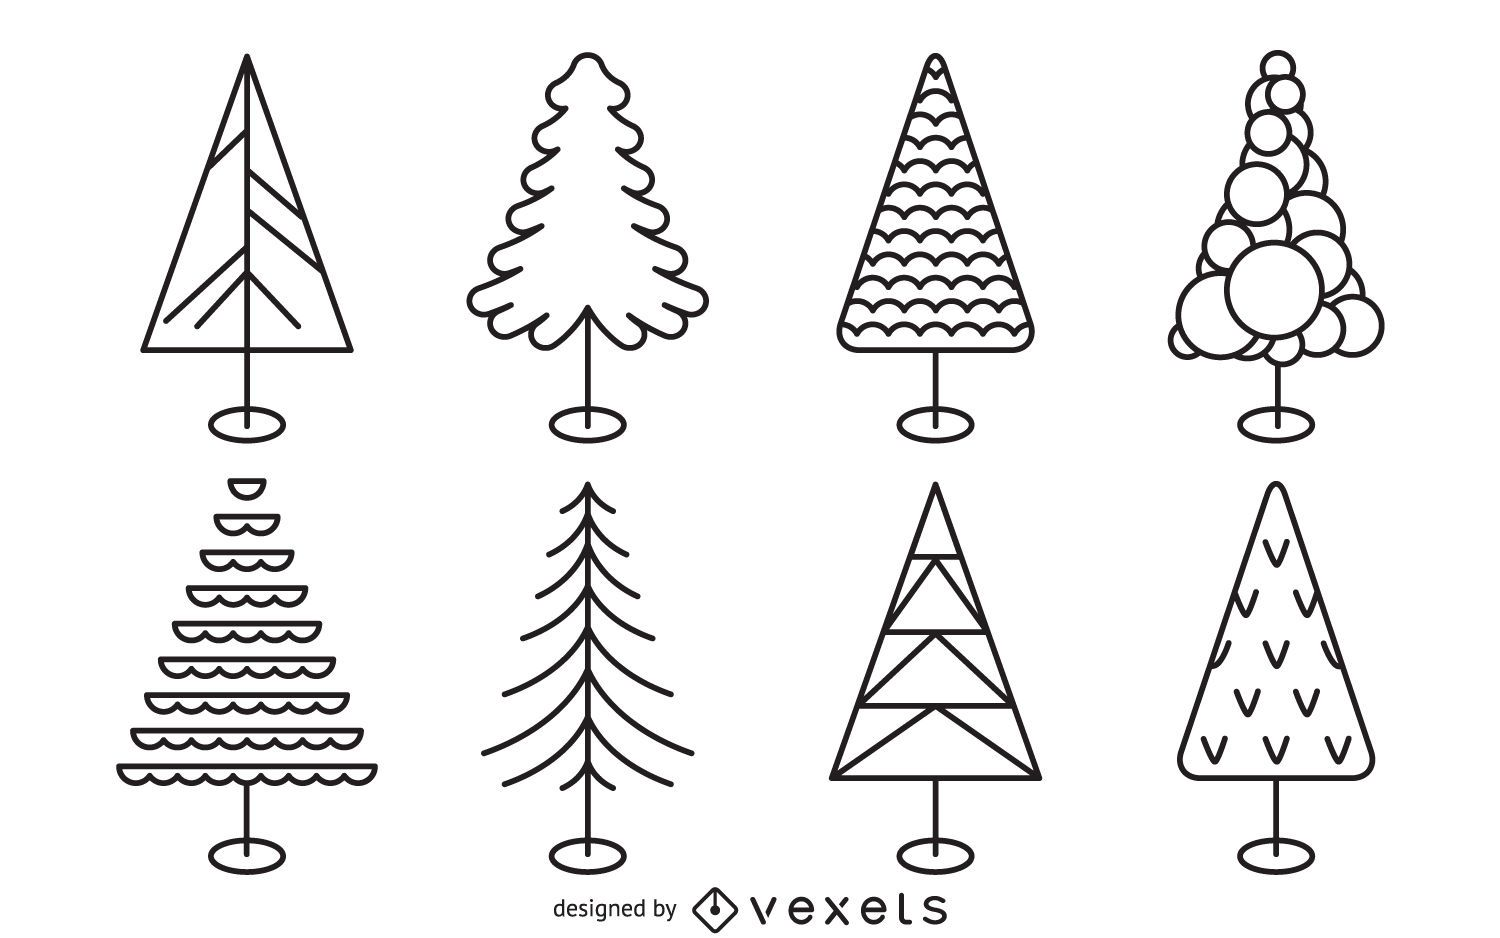 Flat Christmas tree outlines set - Vector download